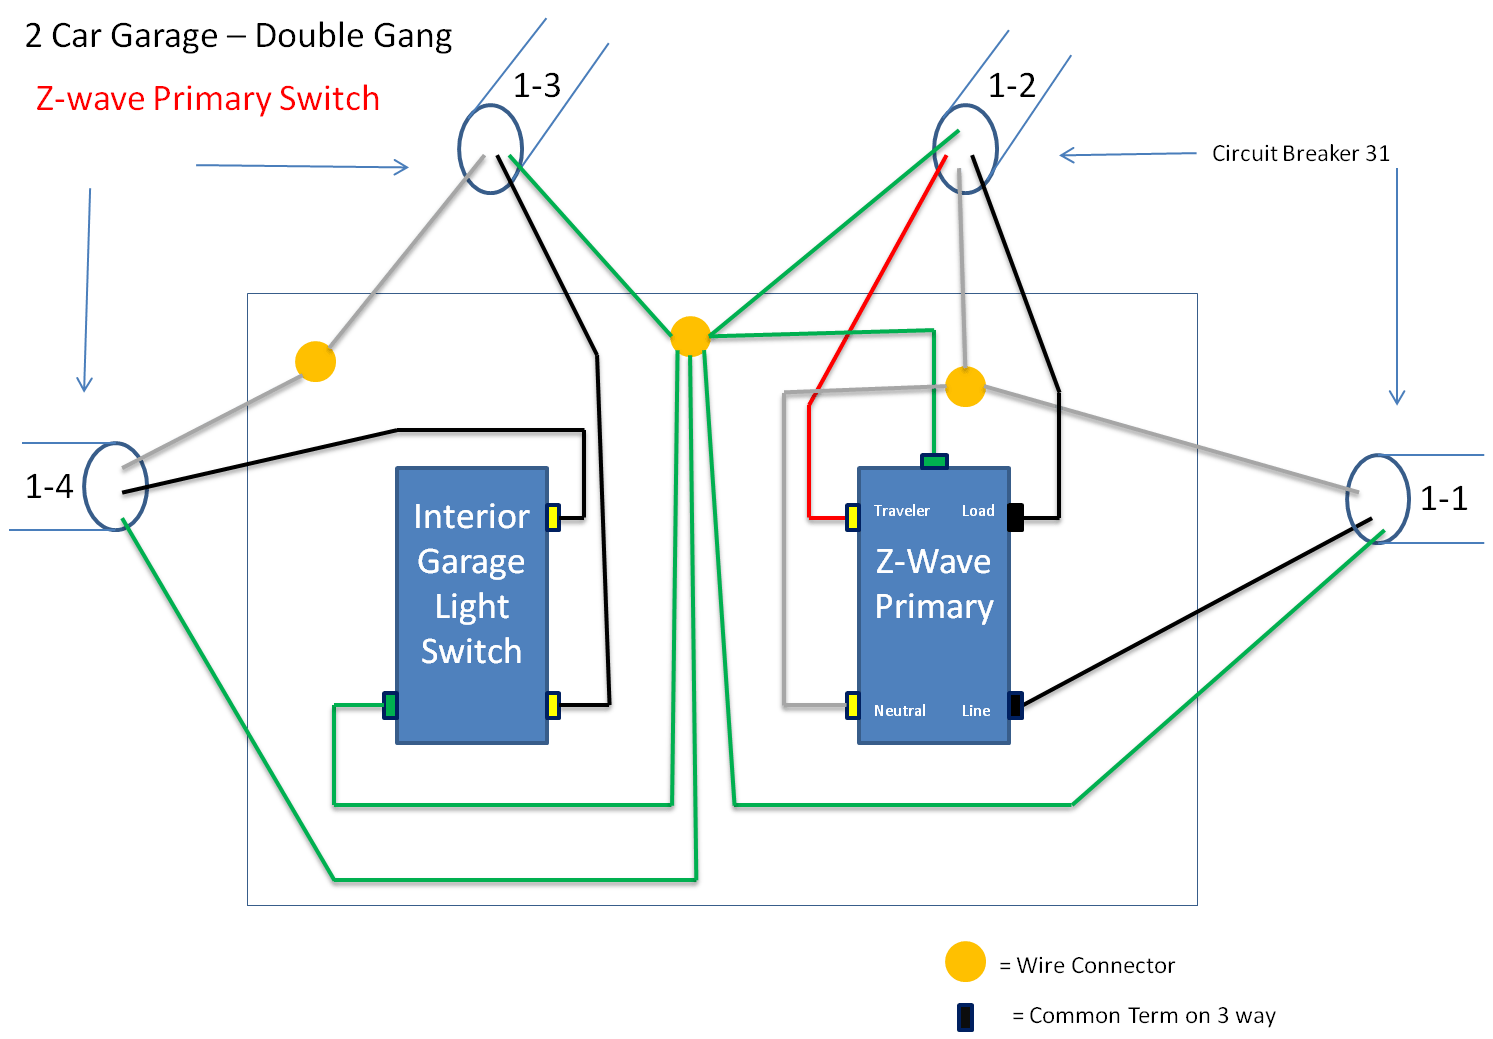 3 way switch wiring diagram 2 switches hydraulic floor jack parts trying to wire in a ge 45614 z wave light kit